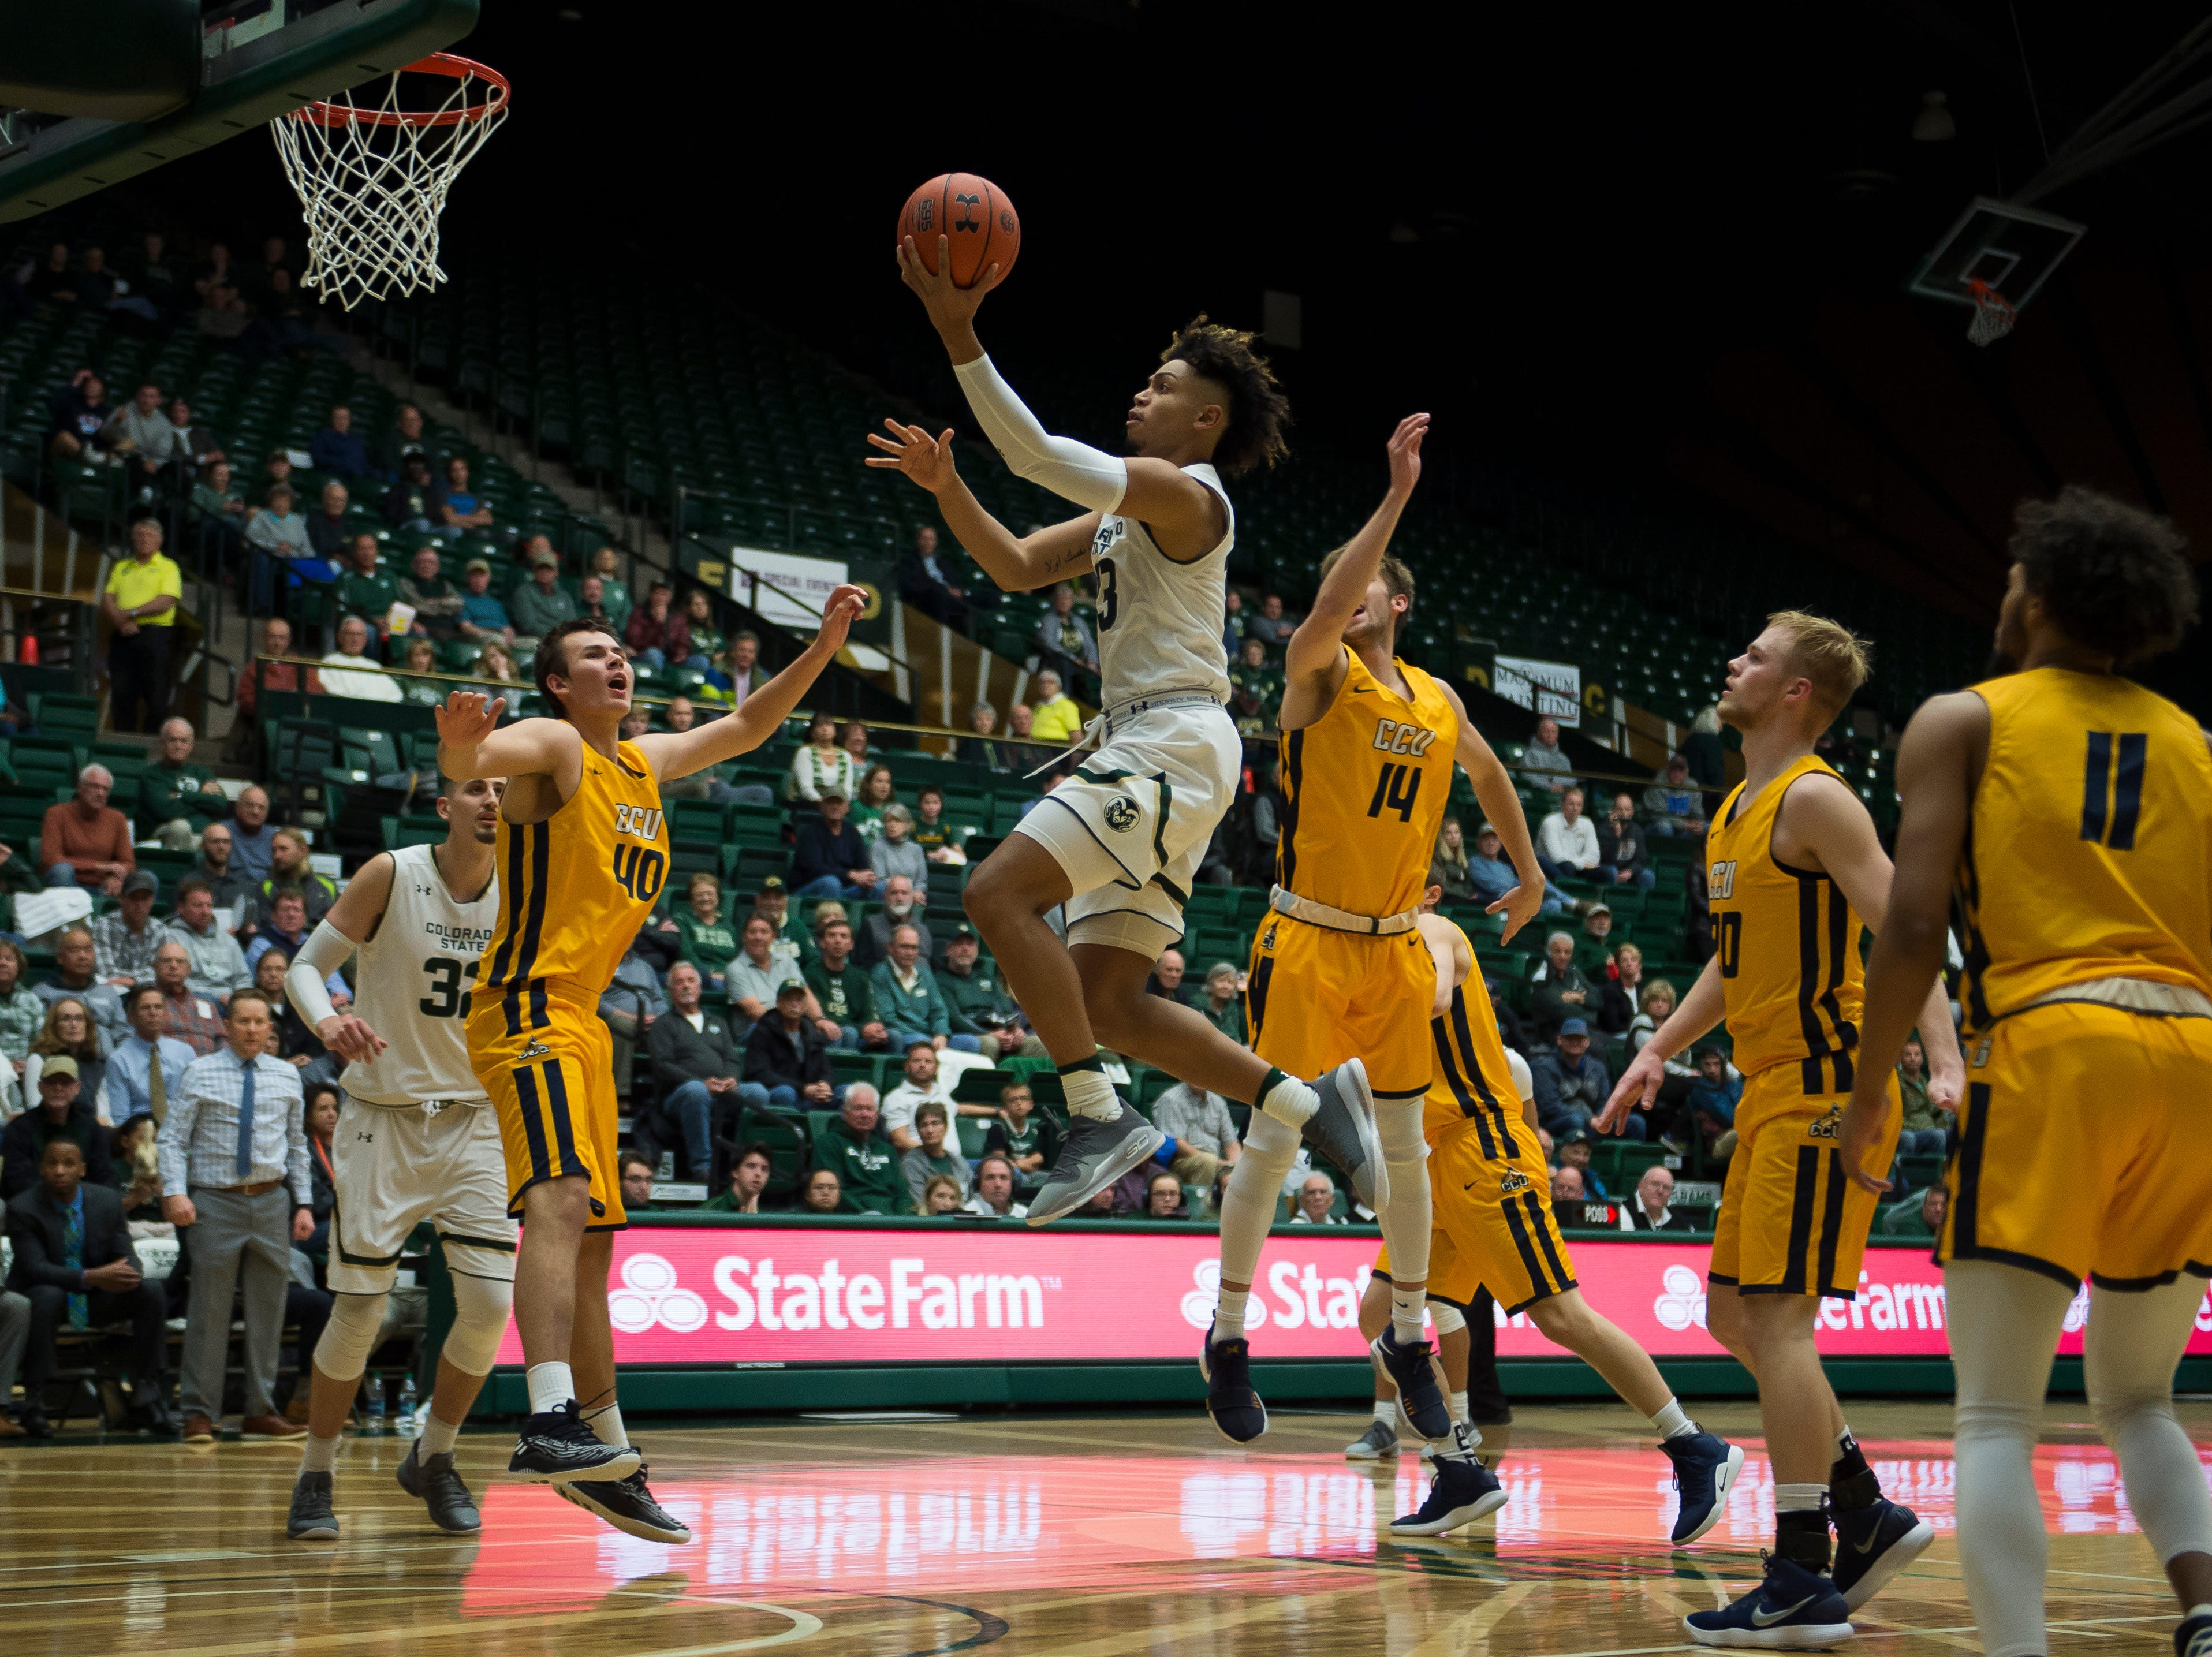 Colorado State University junior forward Lorenzo Jenkins (13) takes a shot over Colorado Christian University defenders on Wednesday, Nov. 7, 2018, at Moby Arena in Fort Collins, Colo.